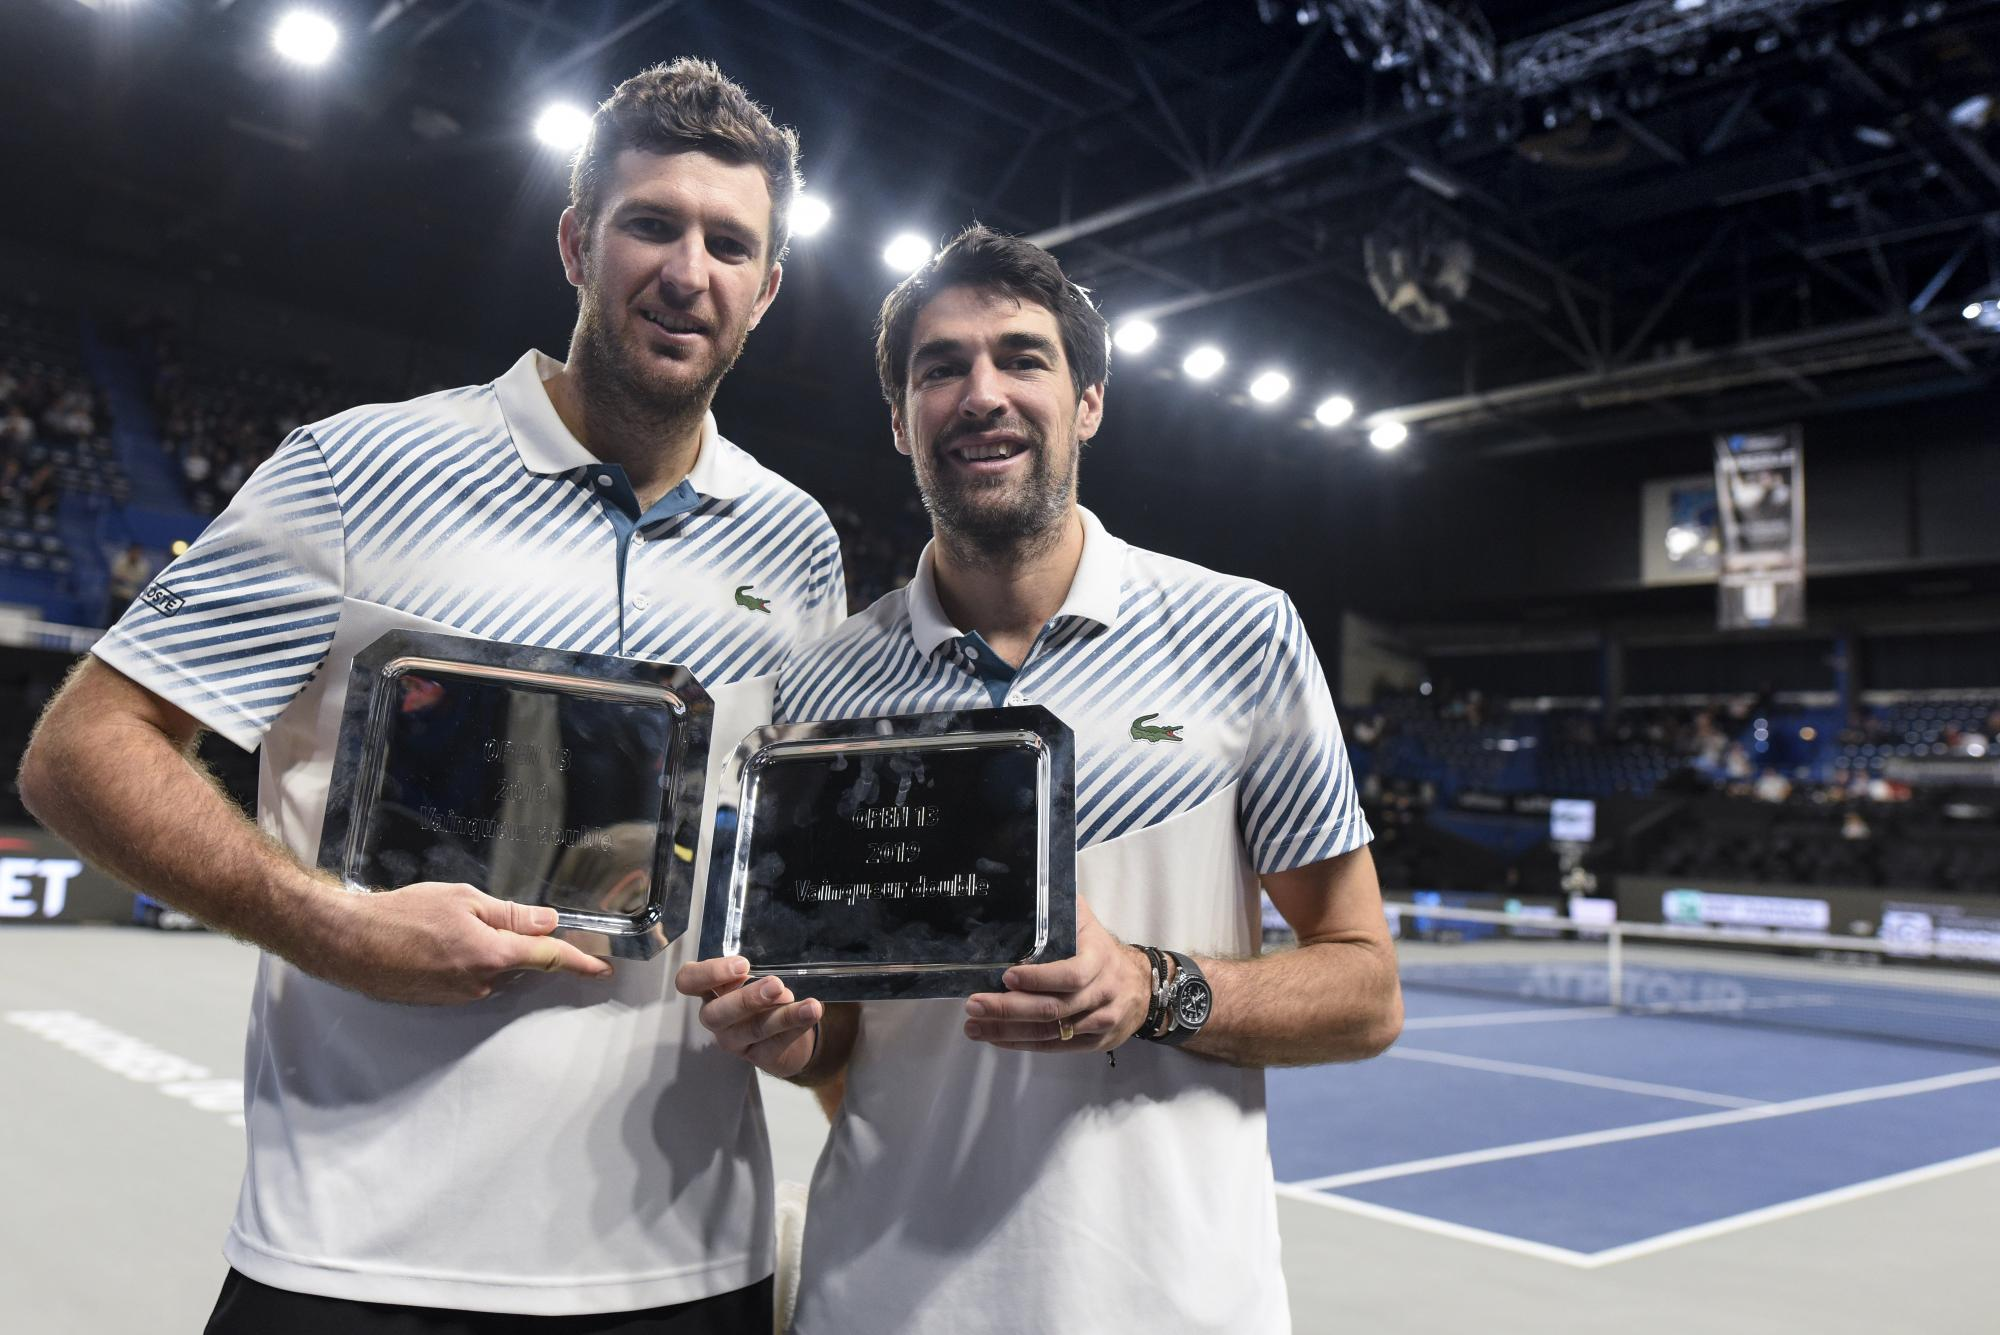 Chardy and Martin doubles champion